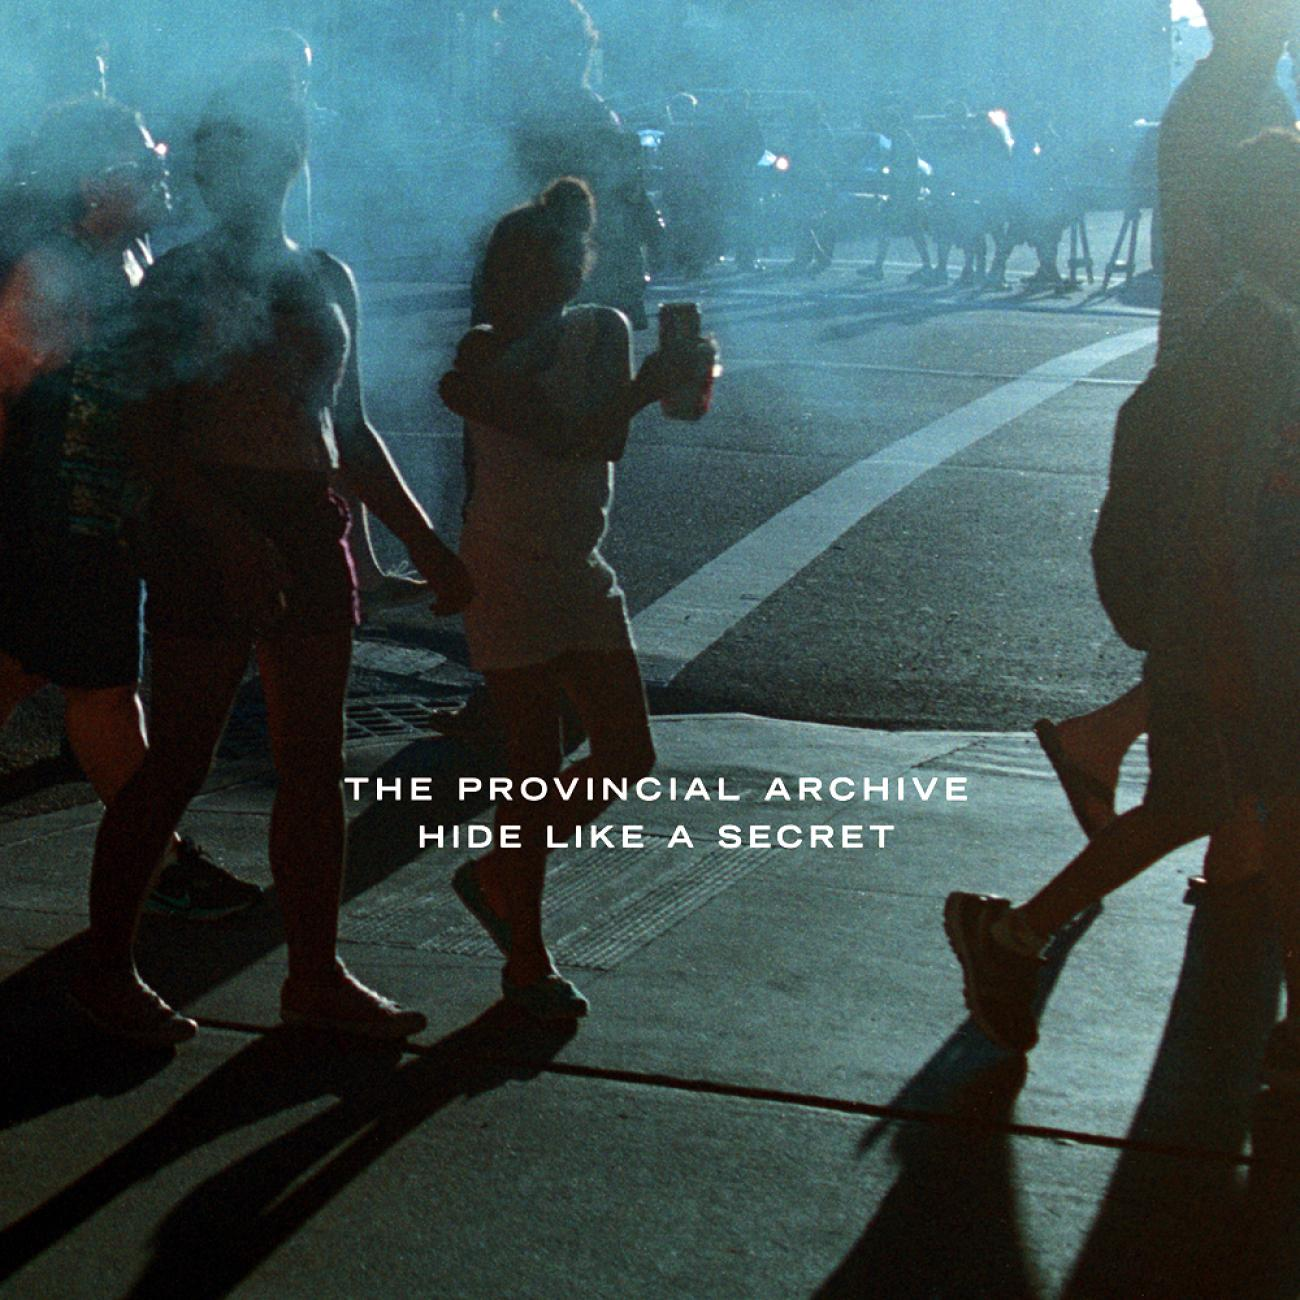 The Provincial Archive - It's all shaken wonder